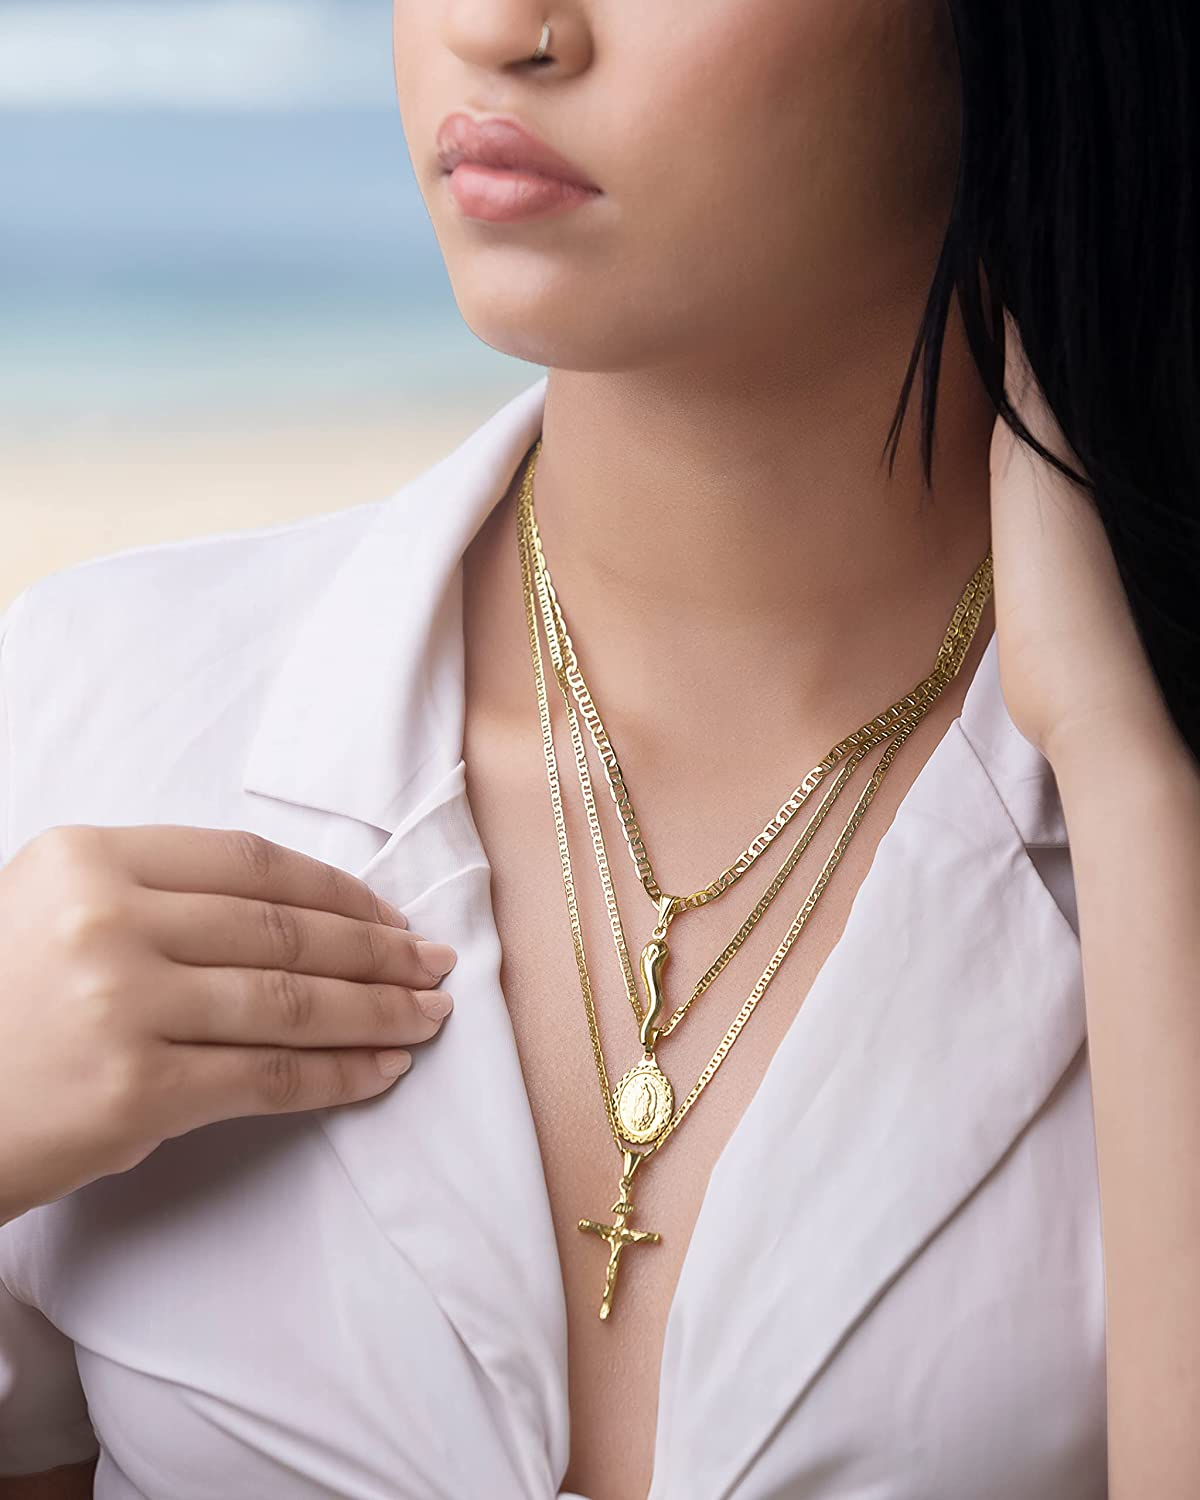 Cross Necklace for Women, Men, Boys, and Girls | Barzel 18K Gold Plated Flat Mariner/Marina 060 3MM Chain Necklace With Cross Pendant.